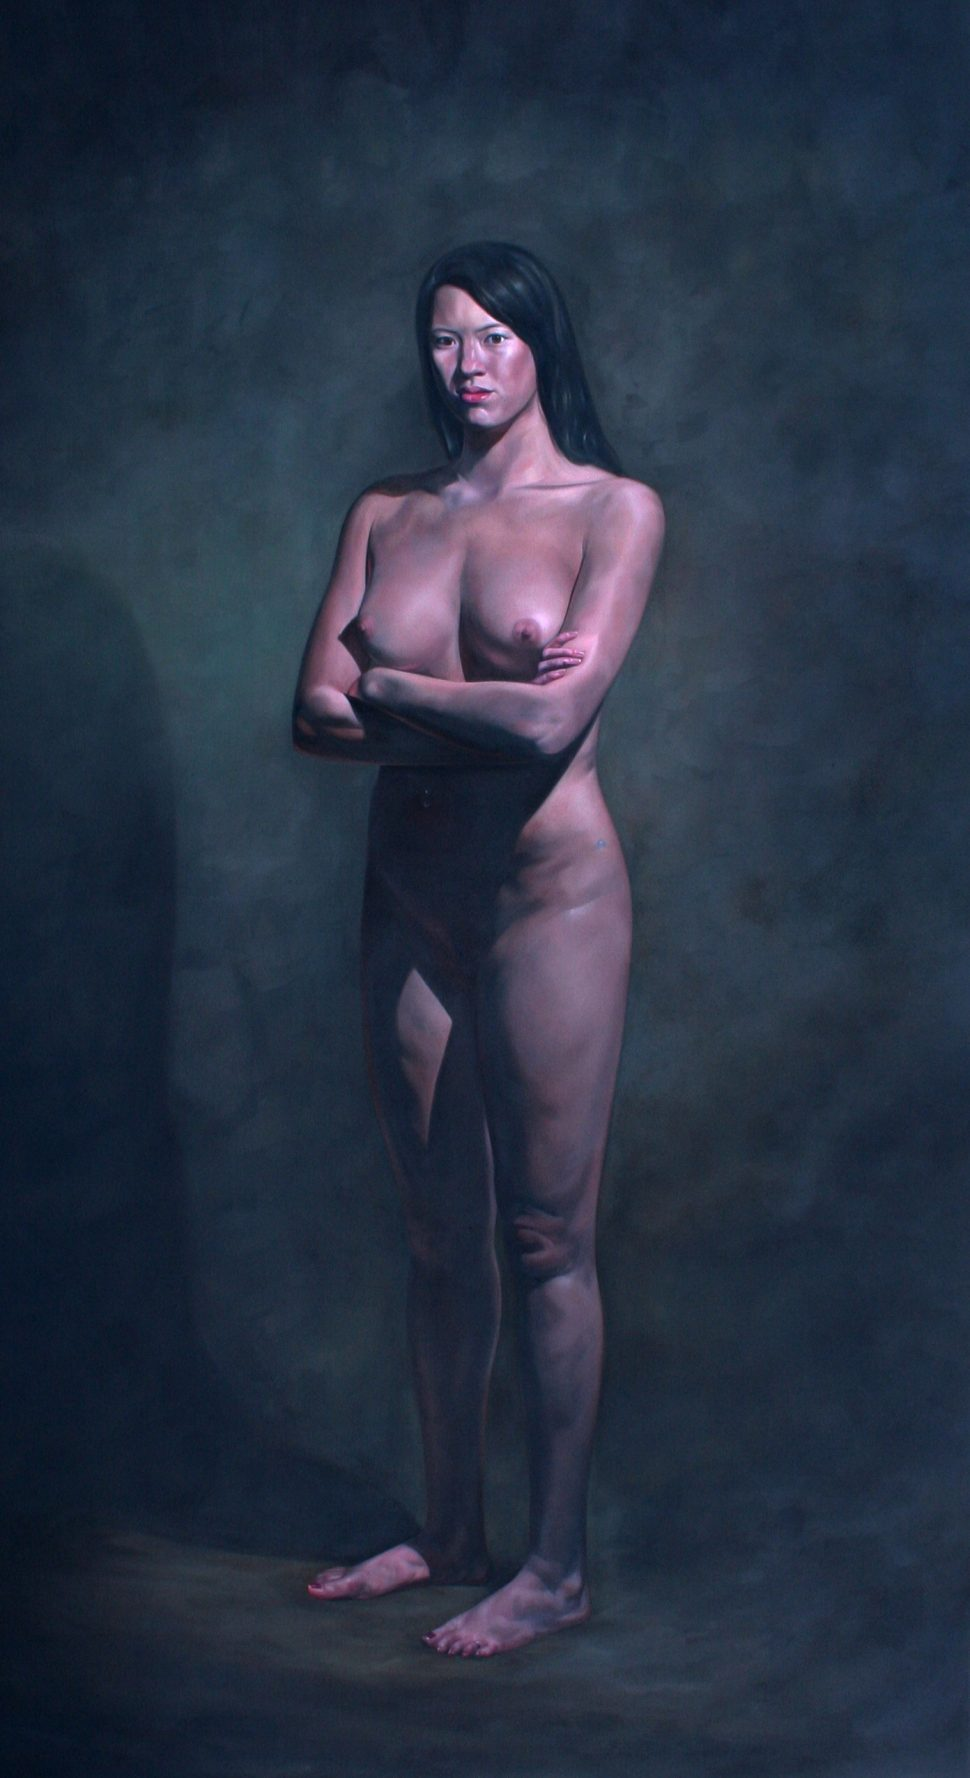 Standing Nude, painting by British painter Nicholas C Williams. Held in the collection of the Frissaris Museum, Athens.